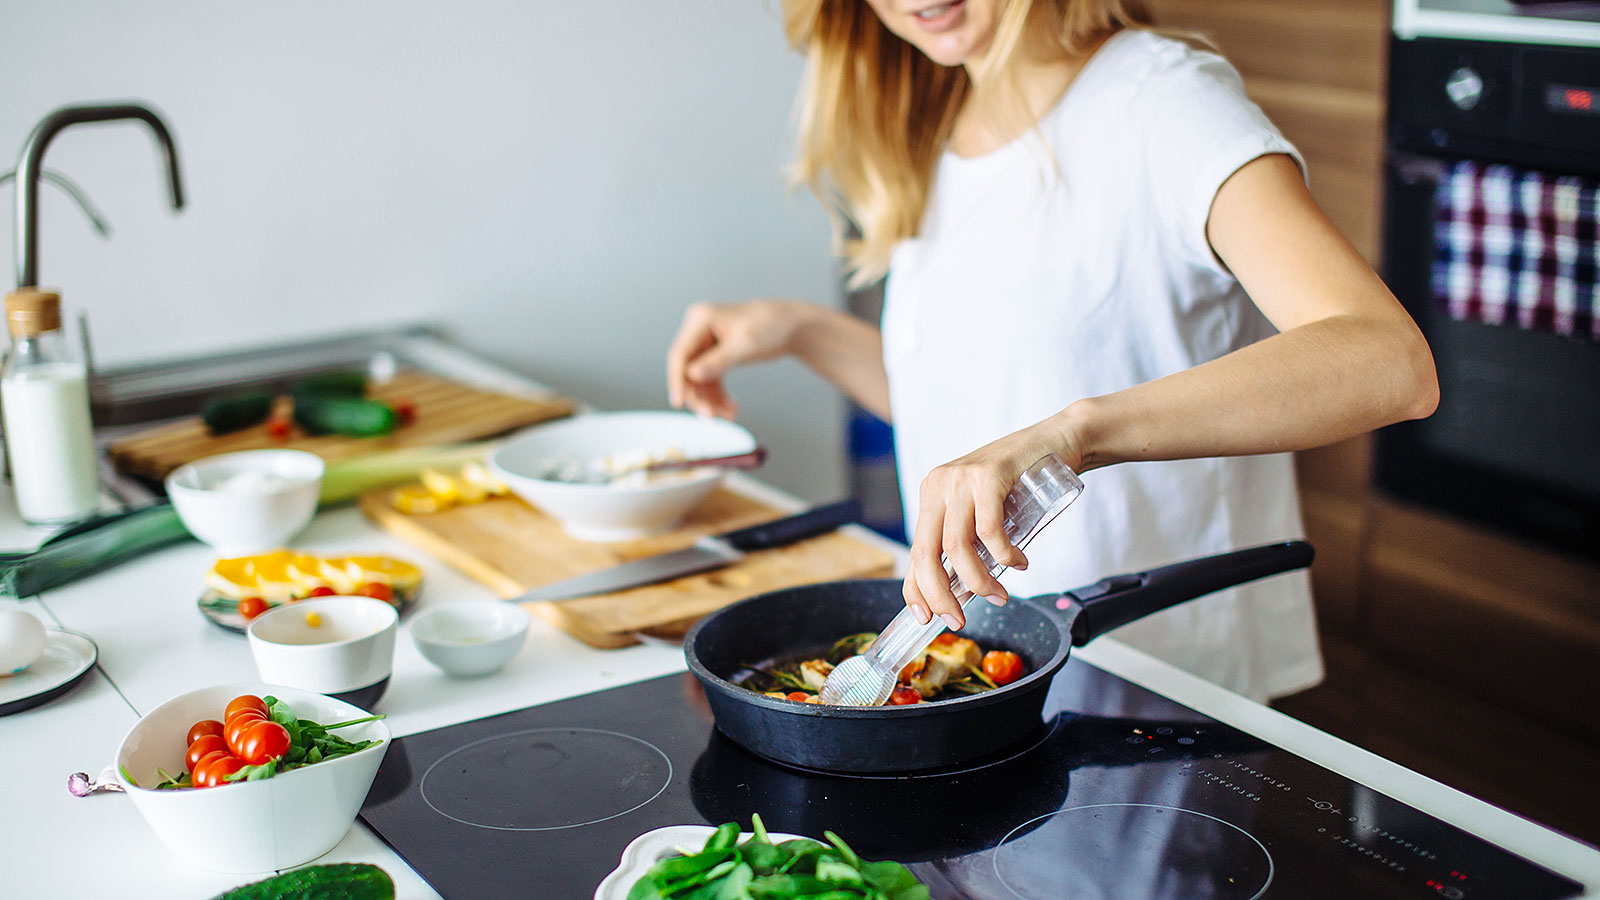 Eating home-cooked meals can add years to your life